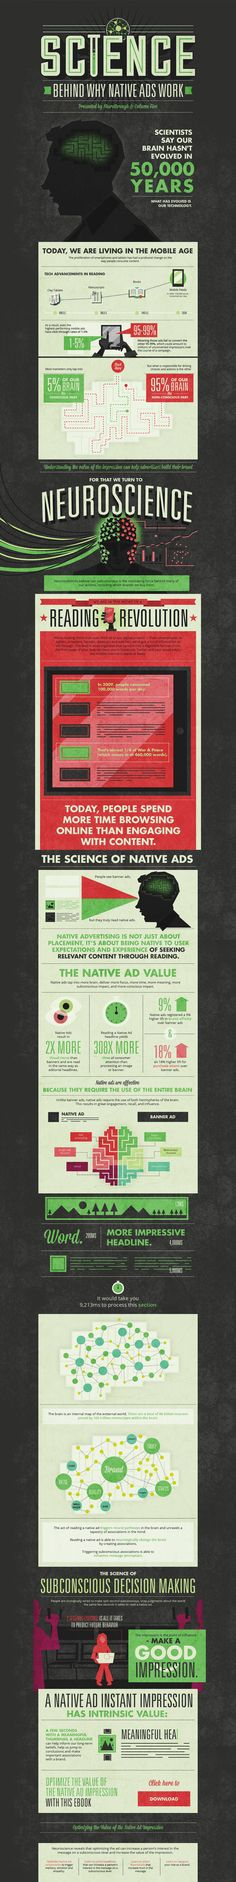 Advertising - The Science Behind Why Native Ads Work [Infographic] : MarketingProfs Article Native Advertising, Advertising Industry, Internet Advertising, Content Marketing, Online Marketing, Social Media Marketing, Digital Marketing, Inbound Marketing, Business Marketing